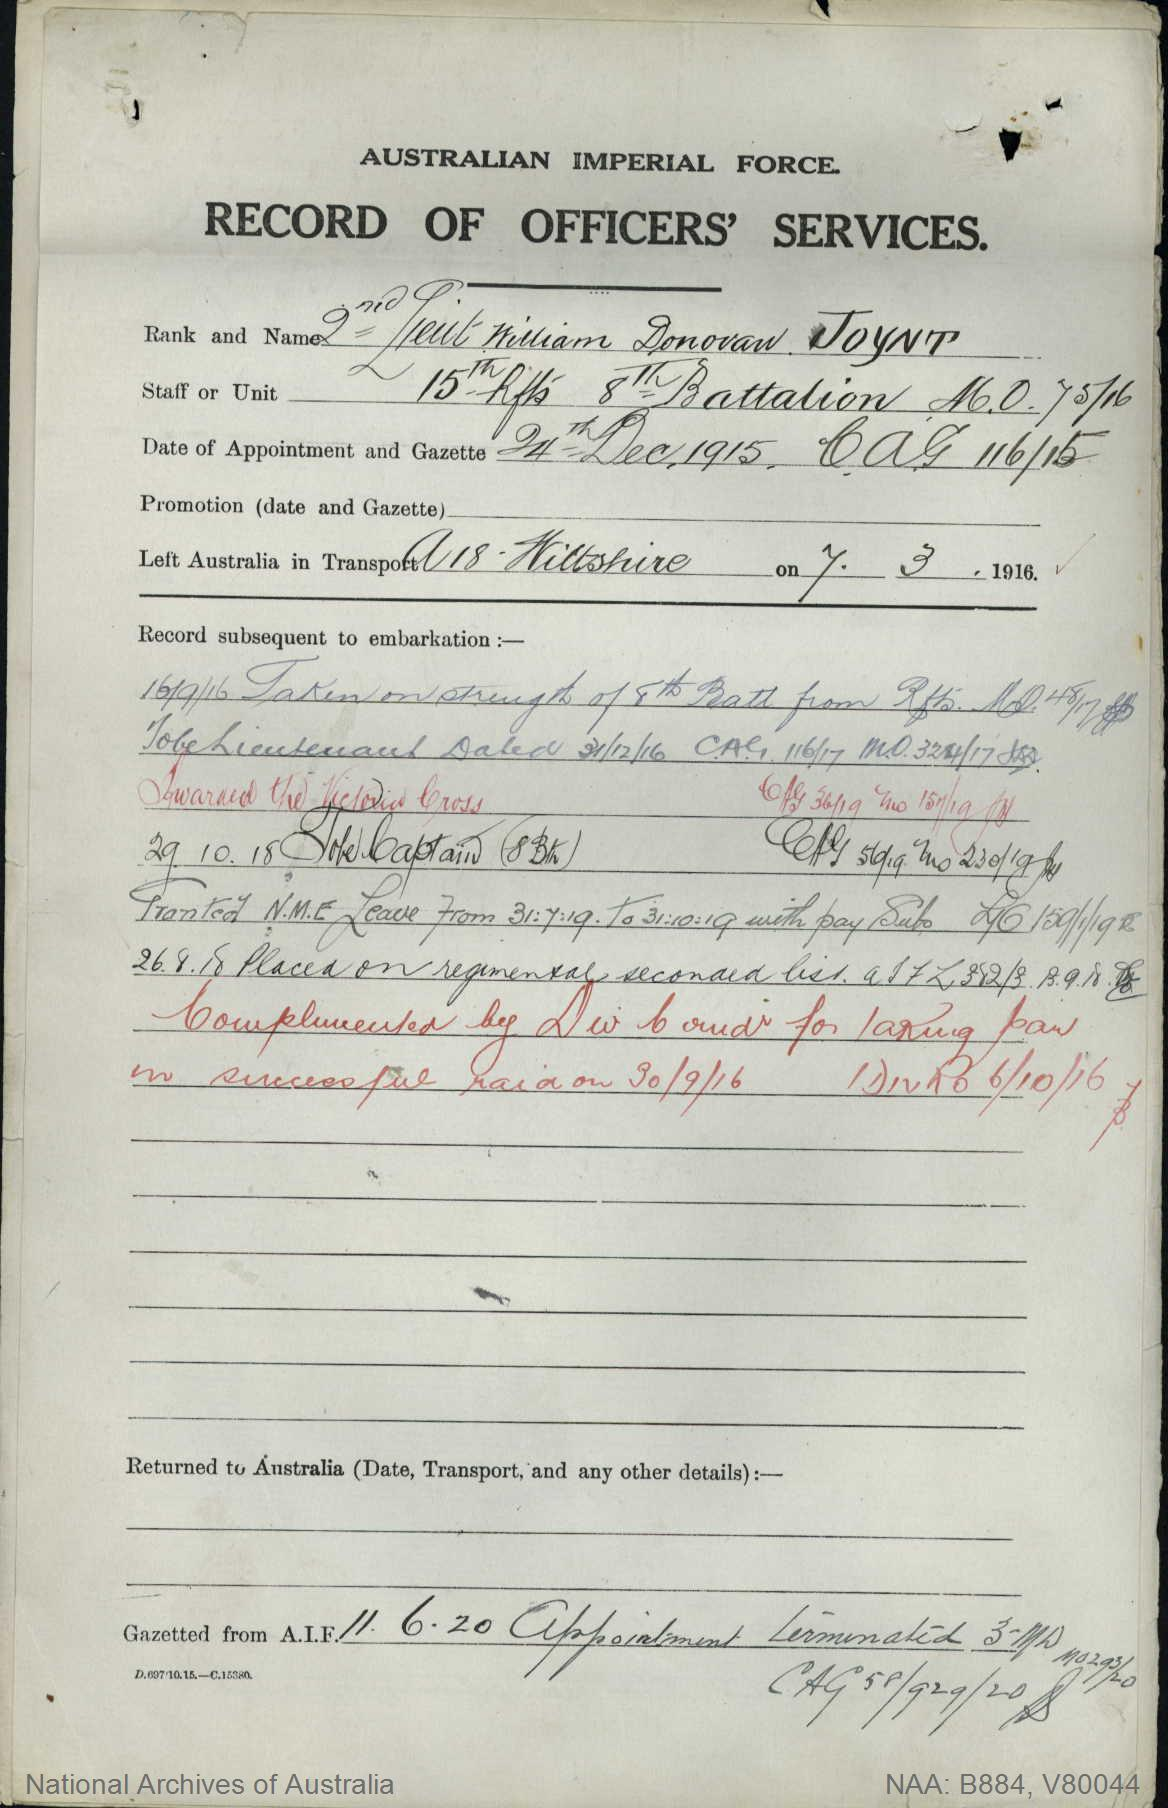 JOYNT WILLIAM DONOVAN : Service Number - V80044 : Date of birth - 19 Mar 1889 : Place of birth - ELSTERNWICK VIC : Place of enlistment - SOUTH MELBOURNE VIC : Next of Kin - JOYNT EDITH